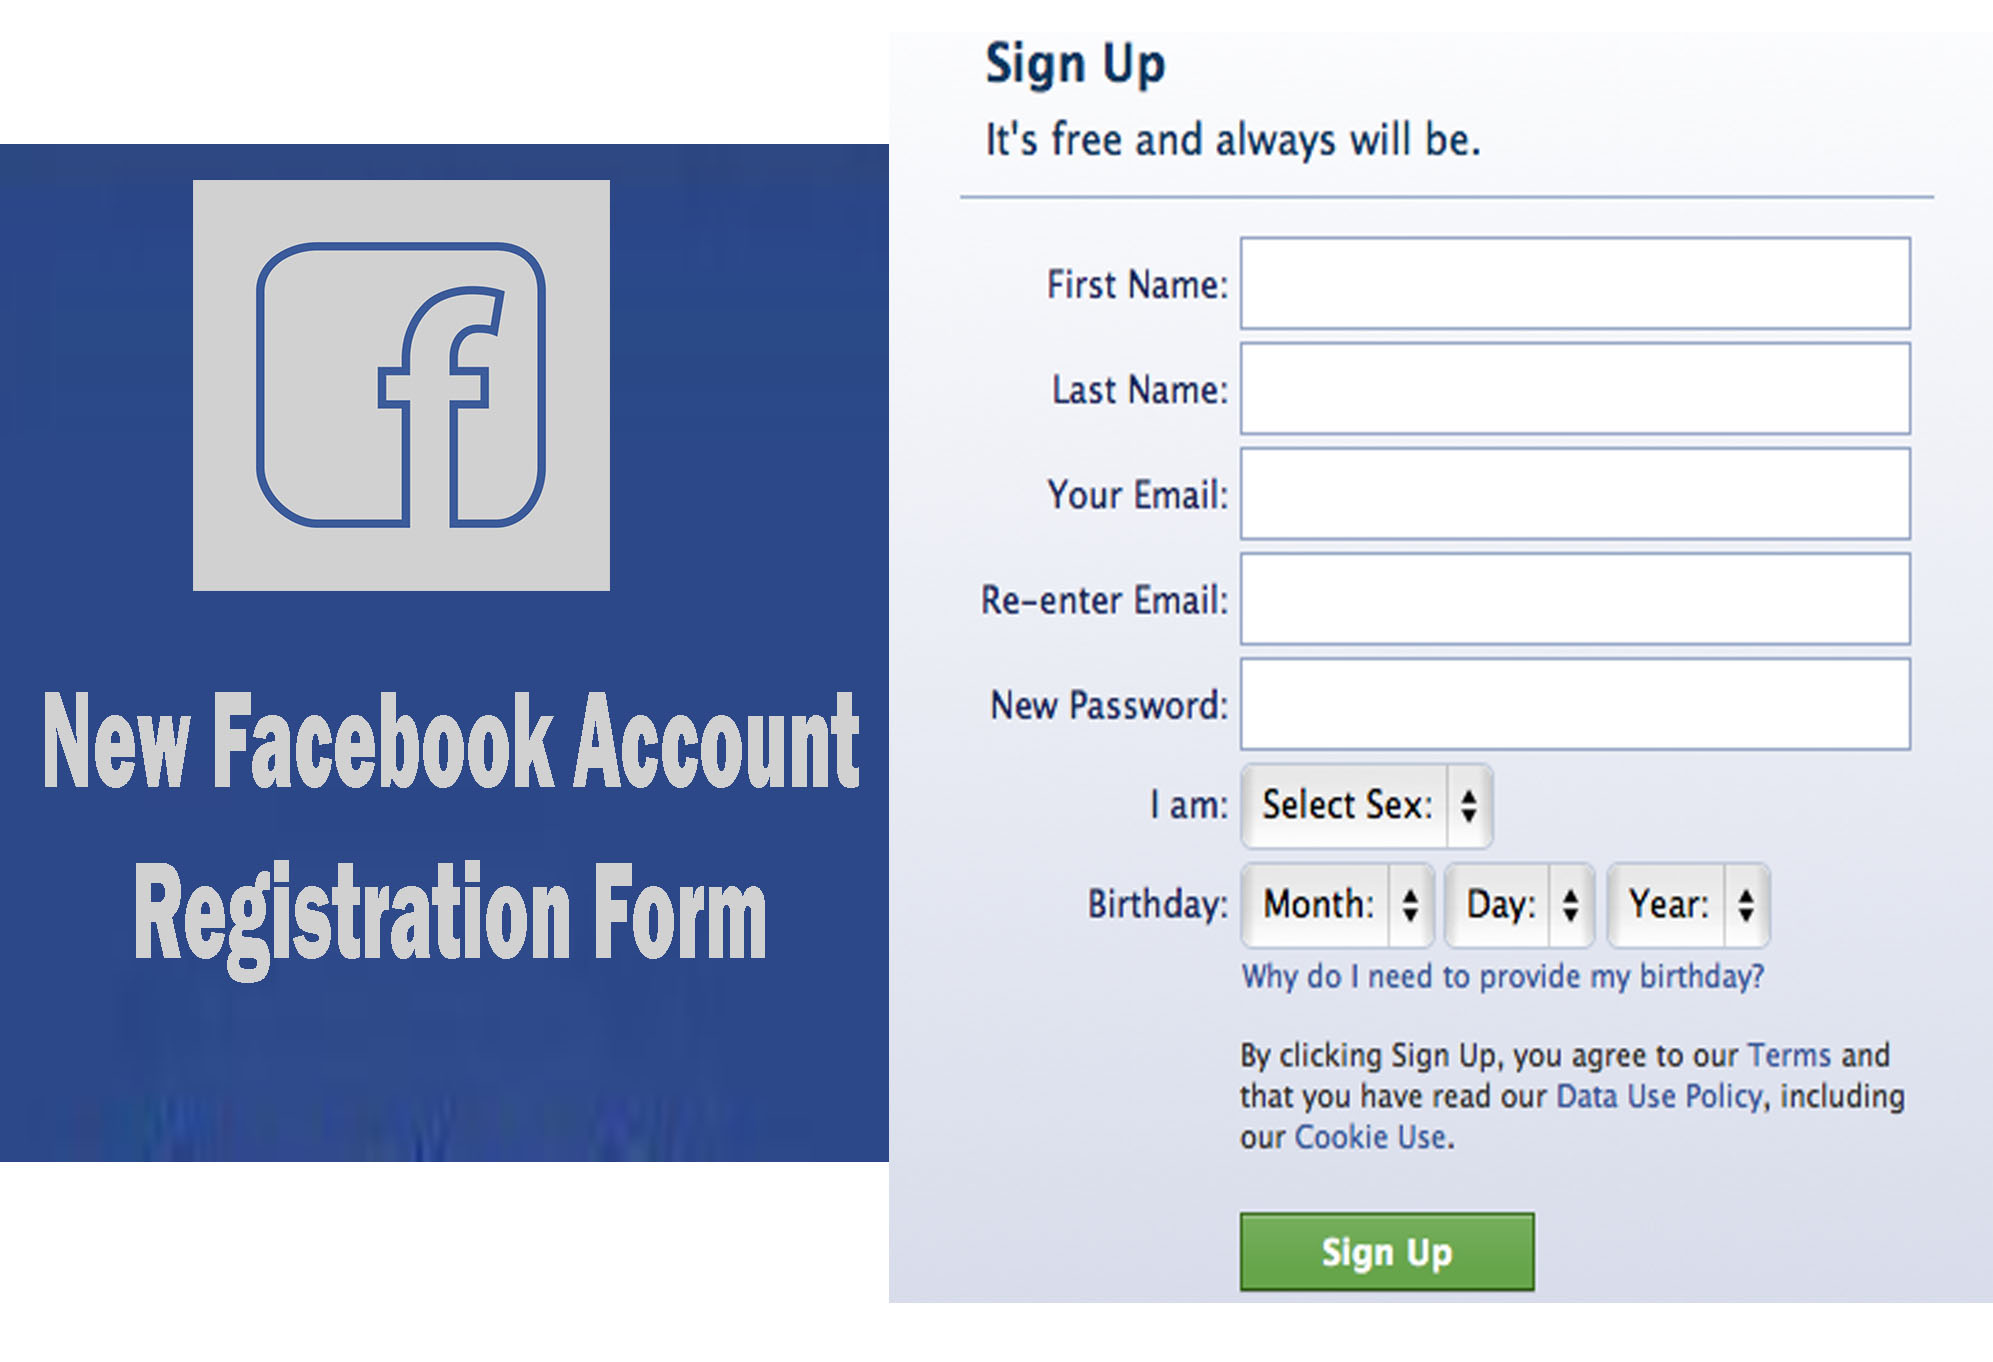 Create New Facebook Account Registration Form - How to